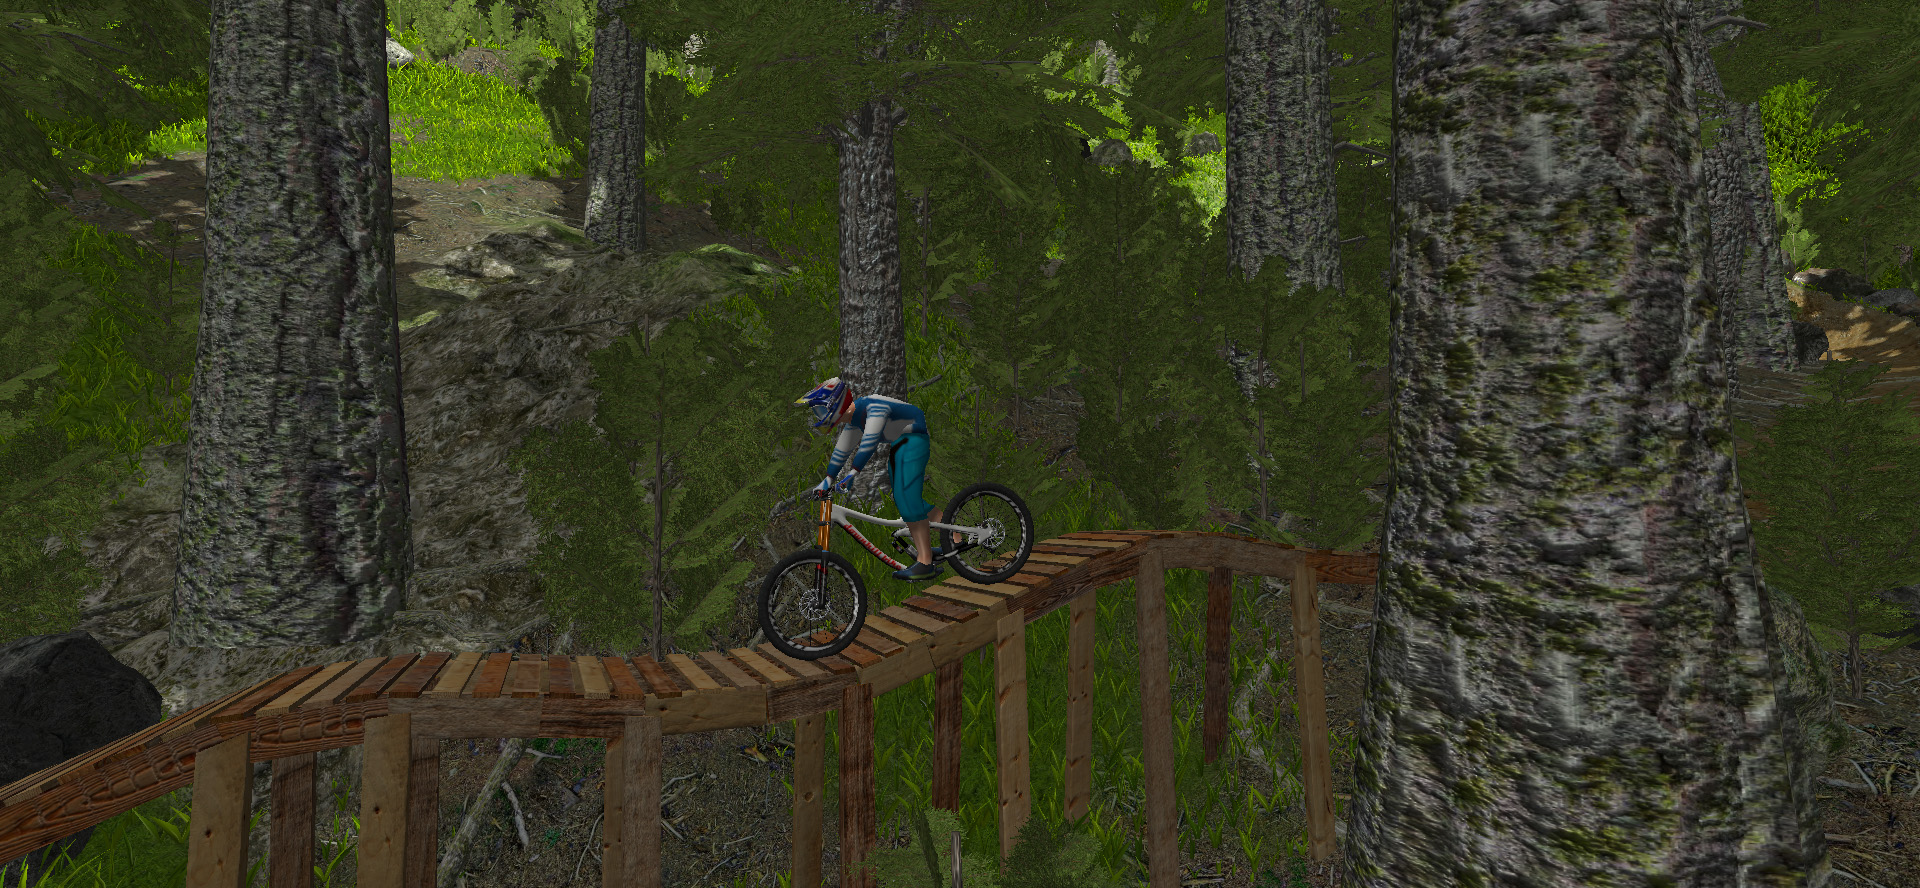 nothshore in free MTB game